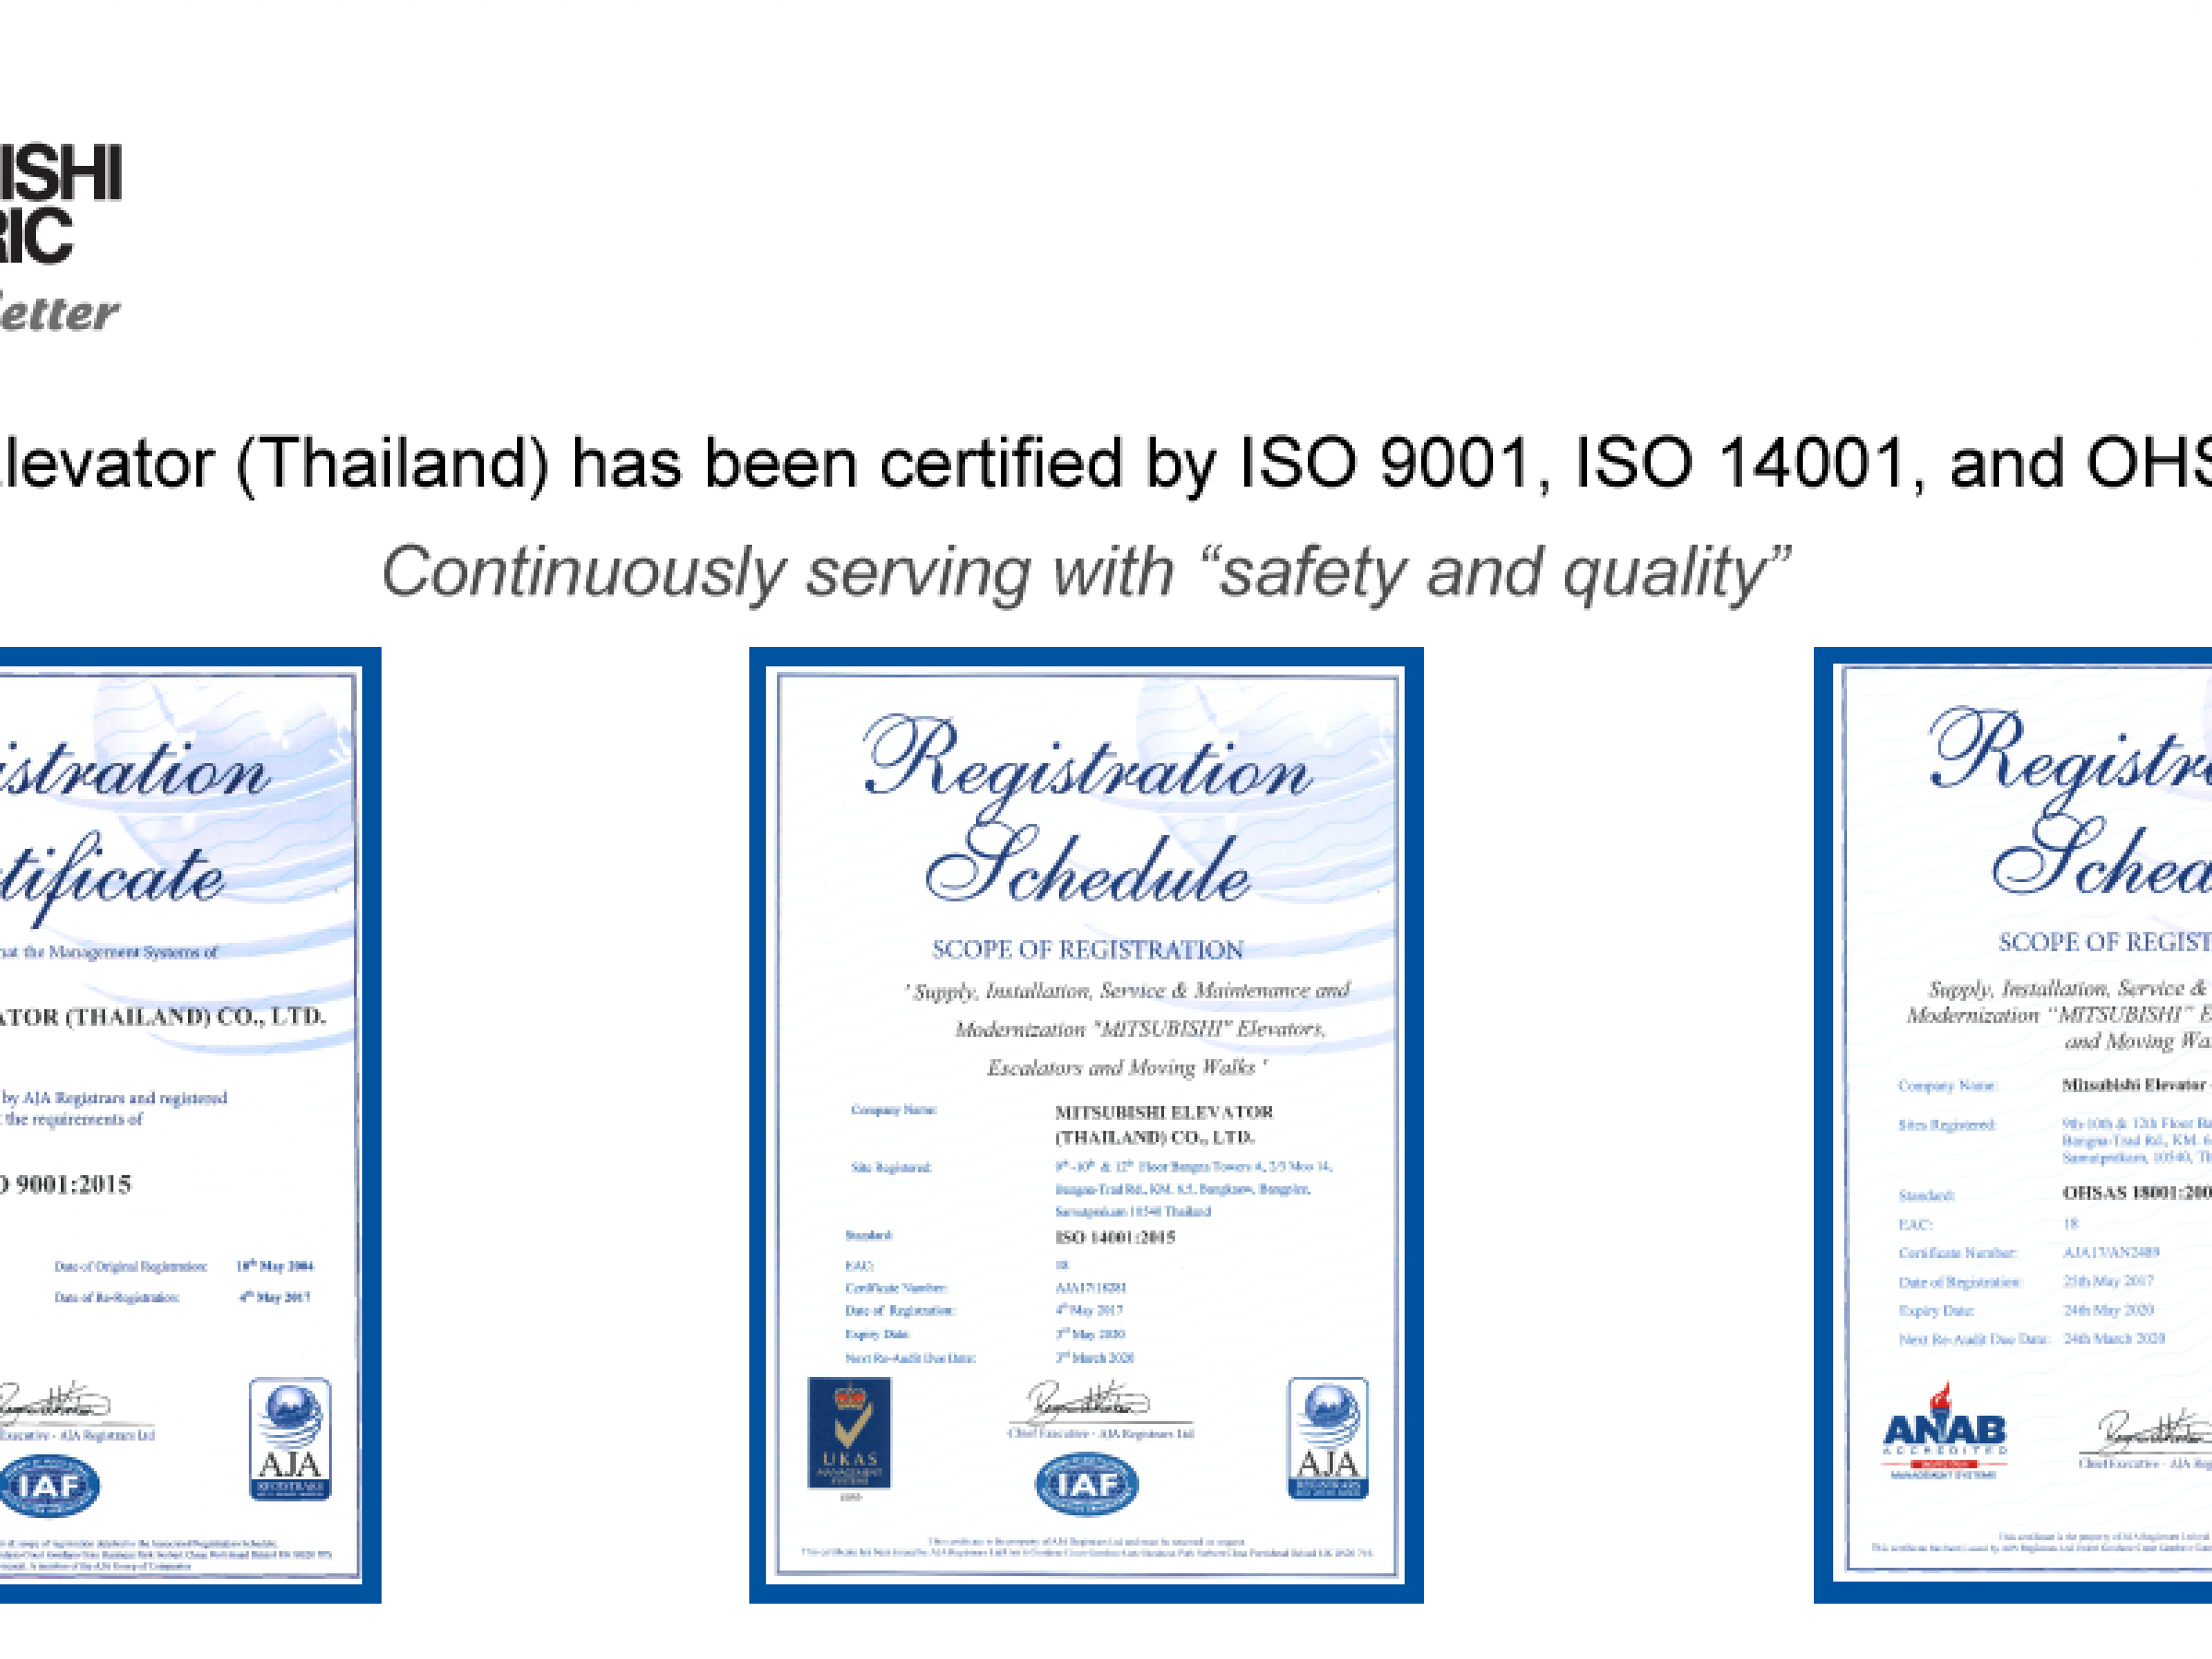 Mitsubishi Elevator (Thailand) has been certified with ISO and OHSAS